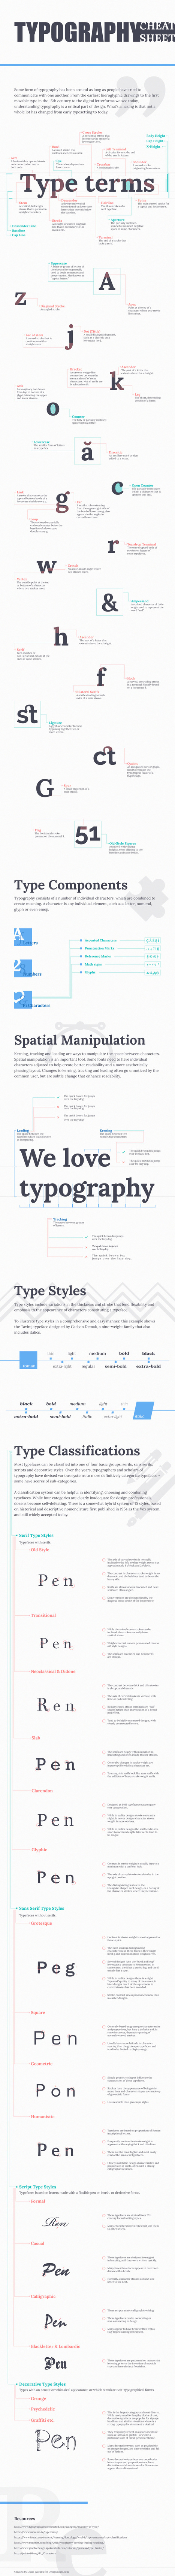 Typography Cheat Sheet #Infographic | Inspired By Design | Scoop.it